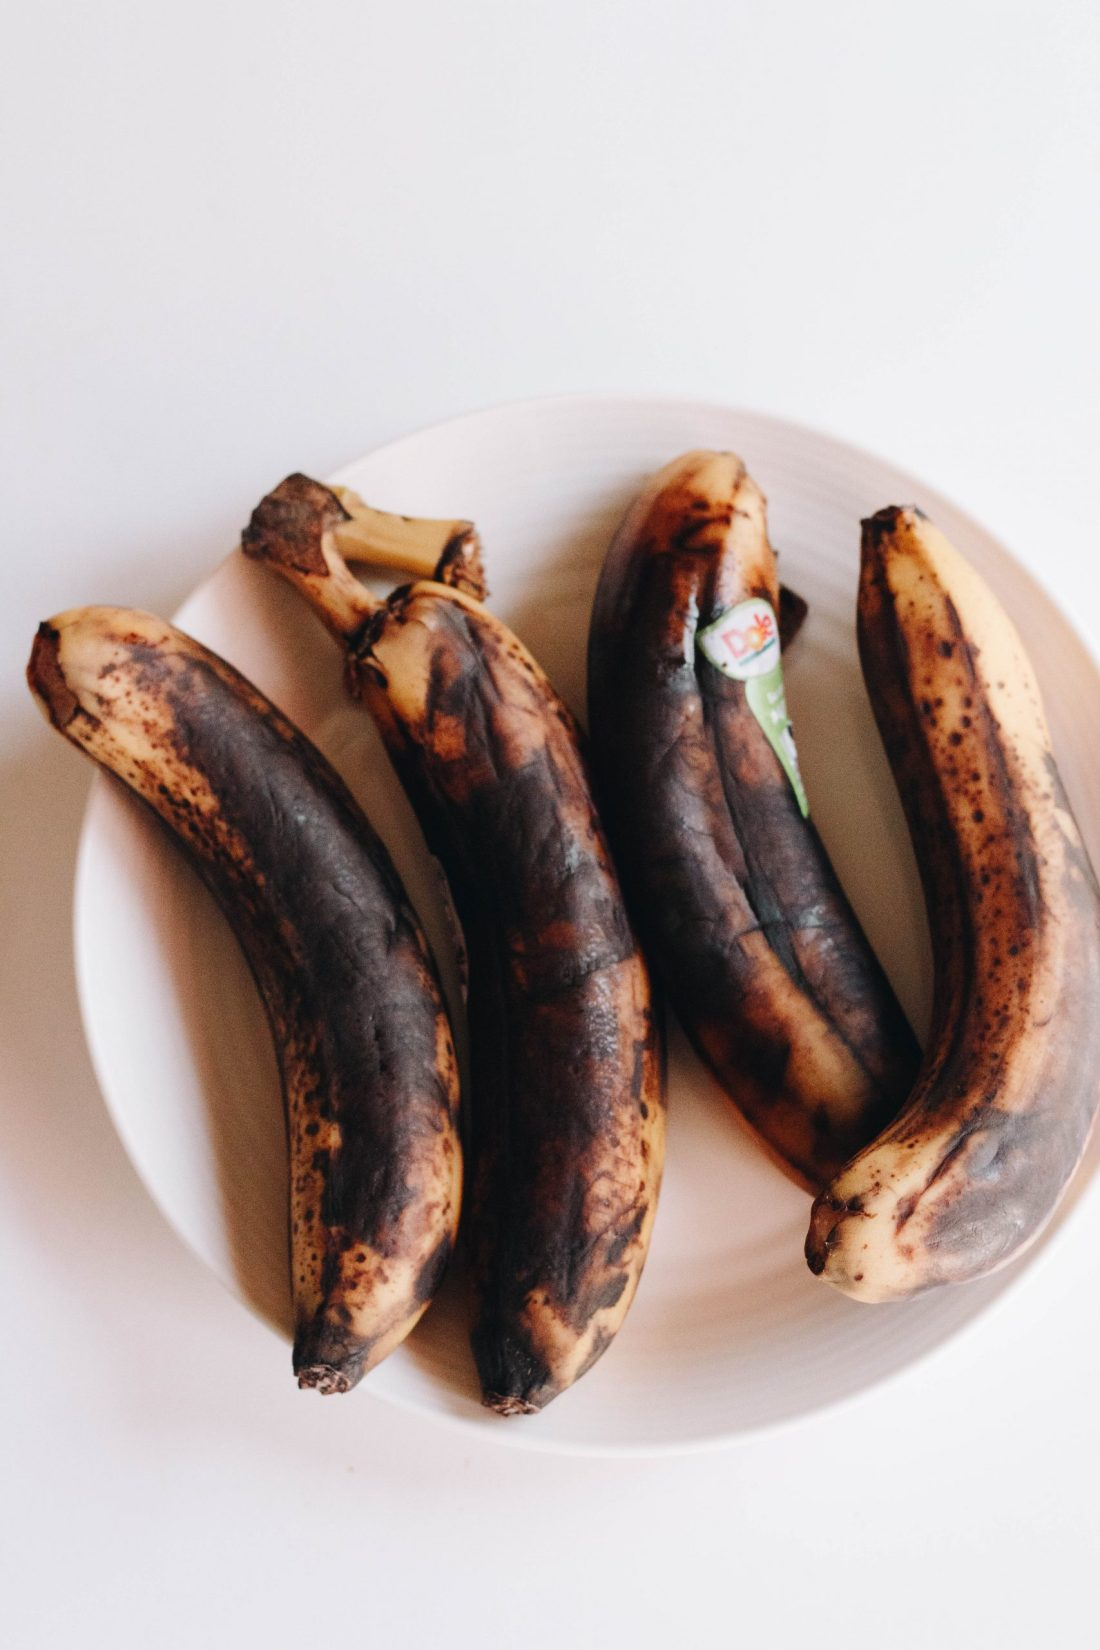 four ripe bananas on a white plate